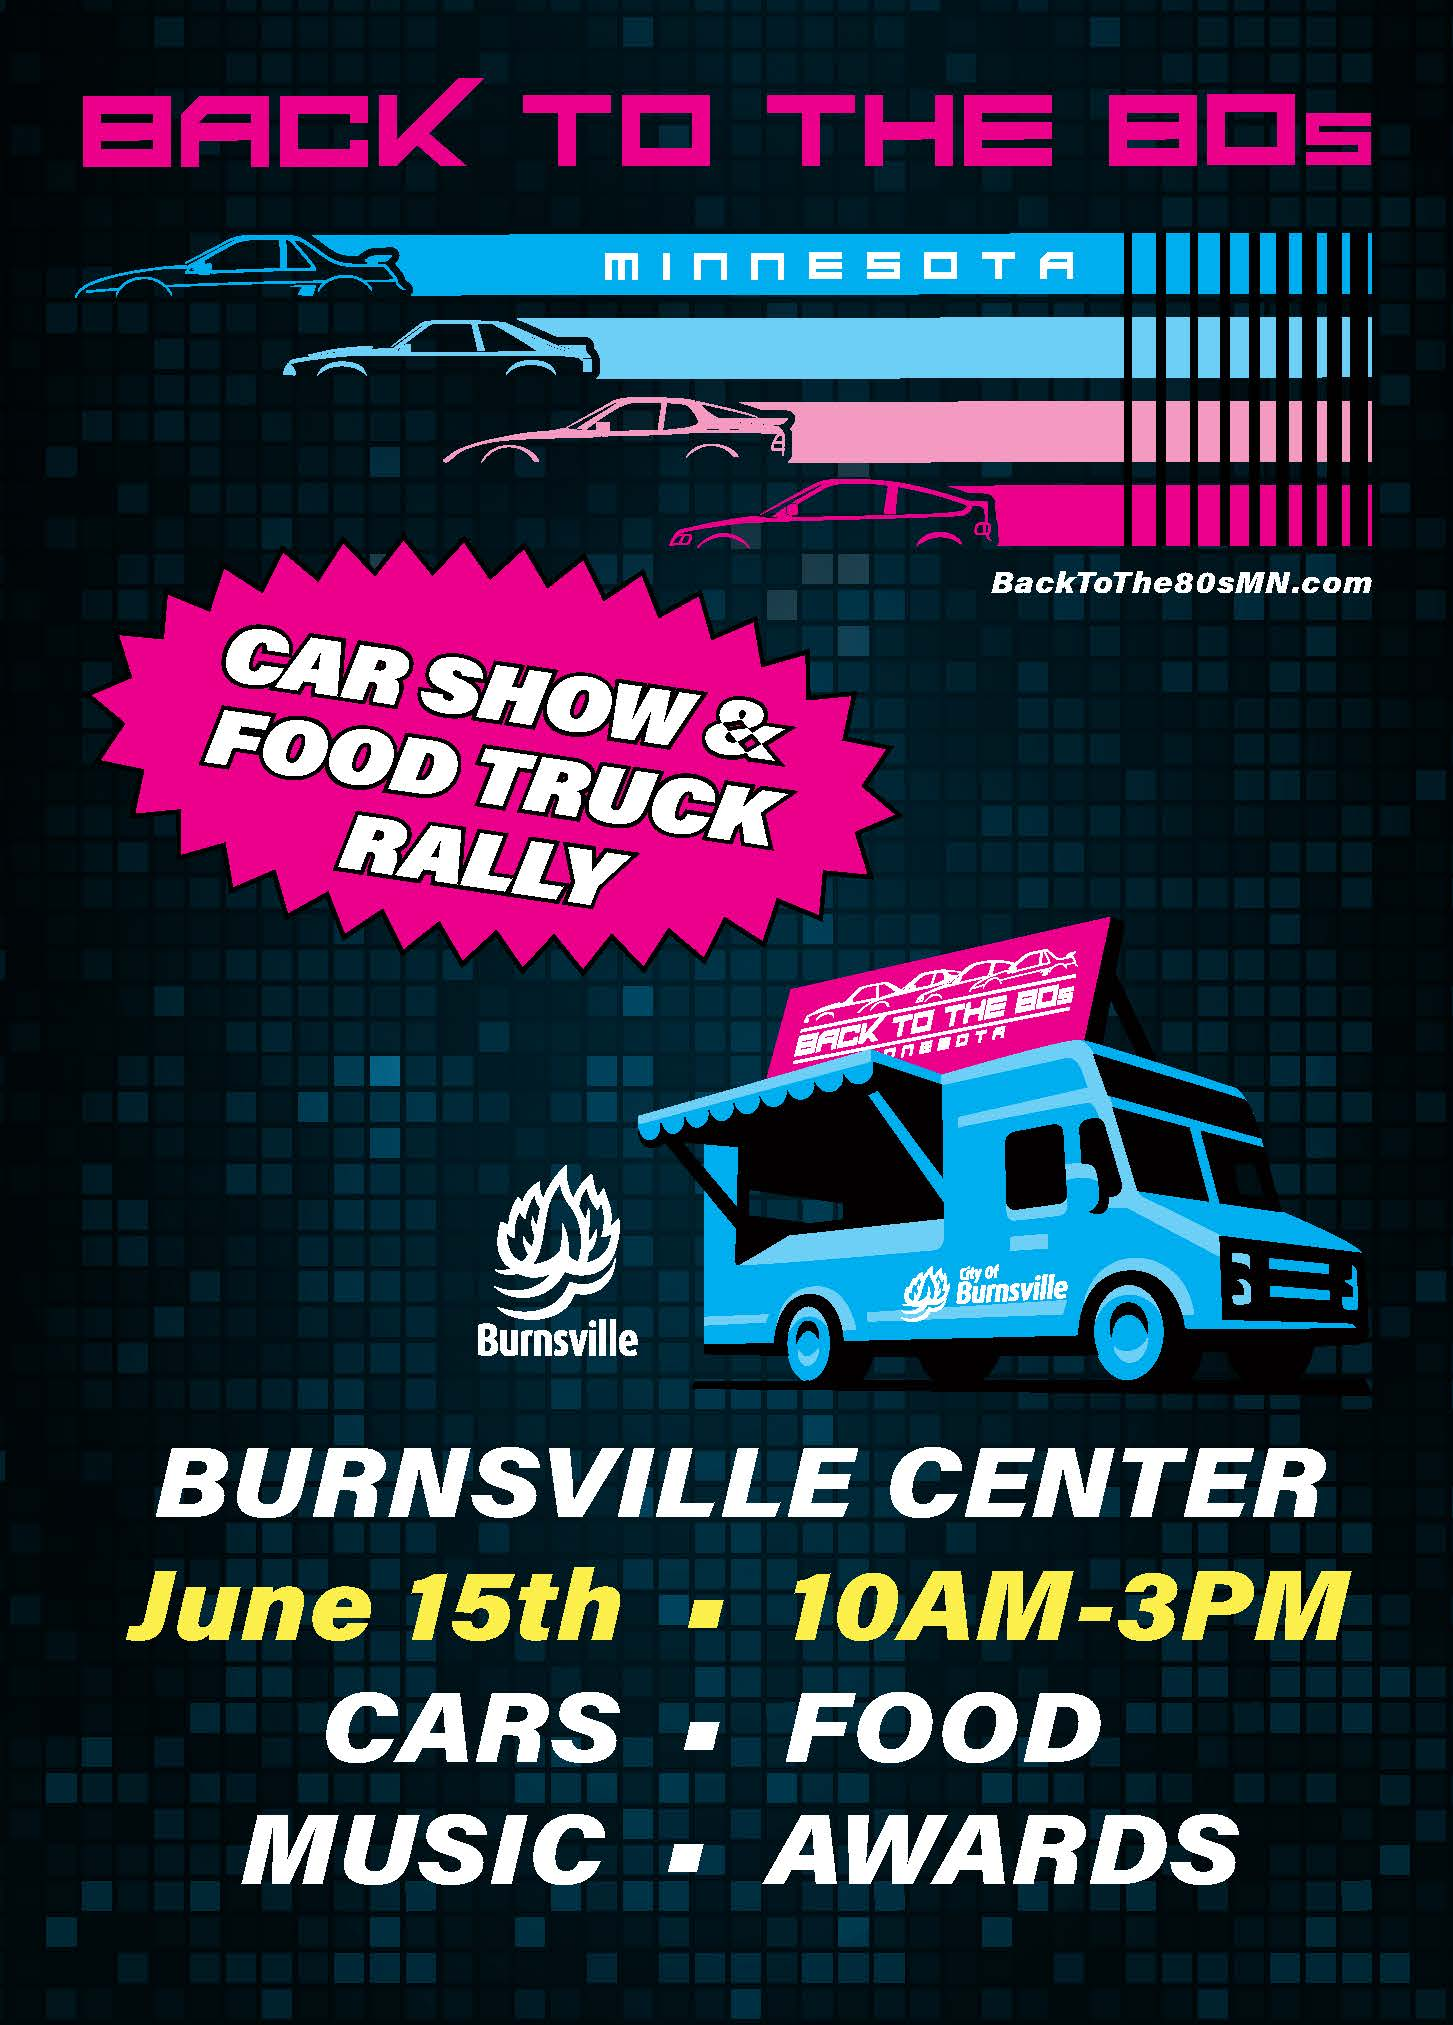 Illustration of 80&#39s style cars and a food truck. Text: Back to the 80s car show & food truck ral